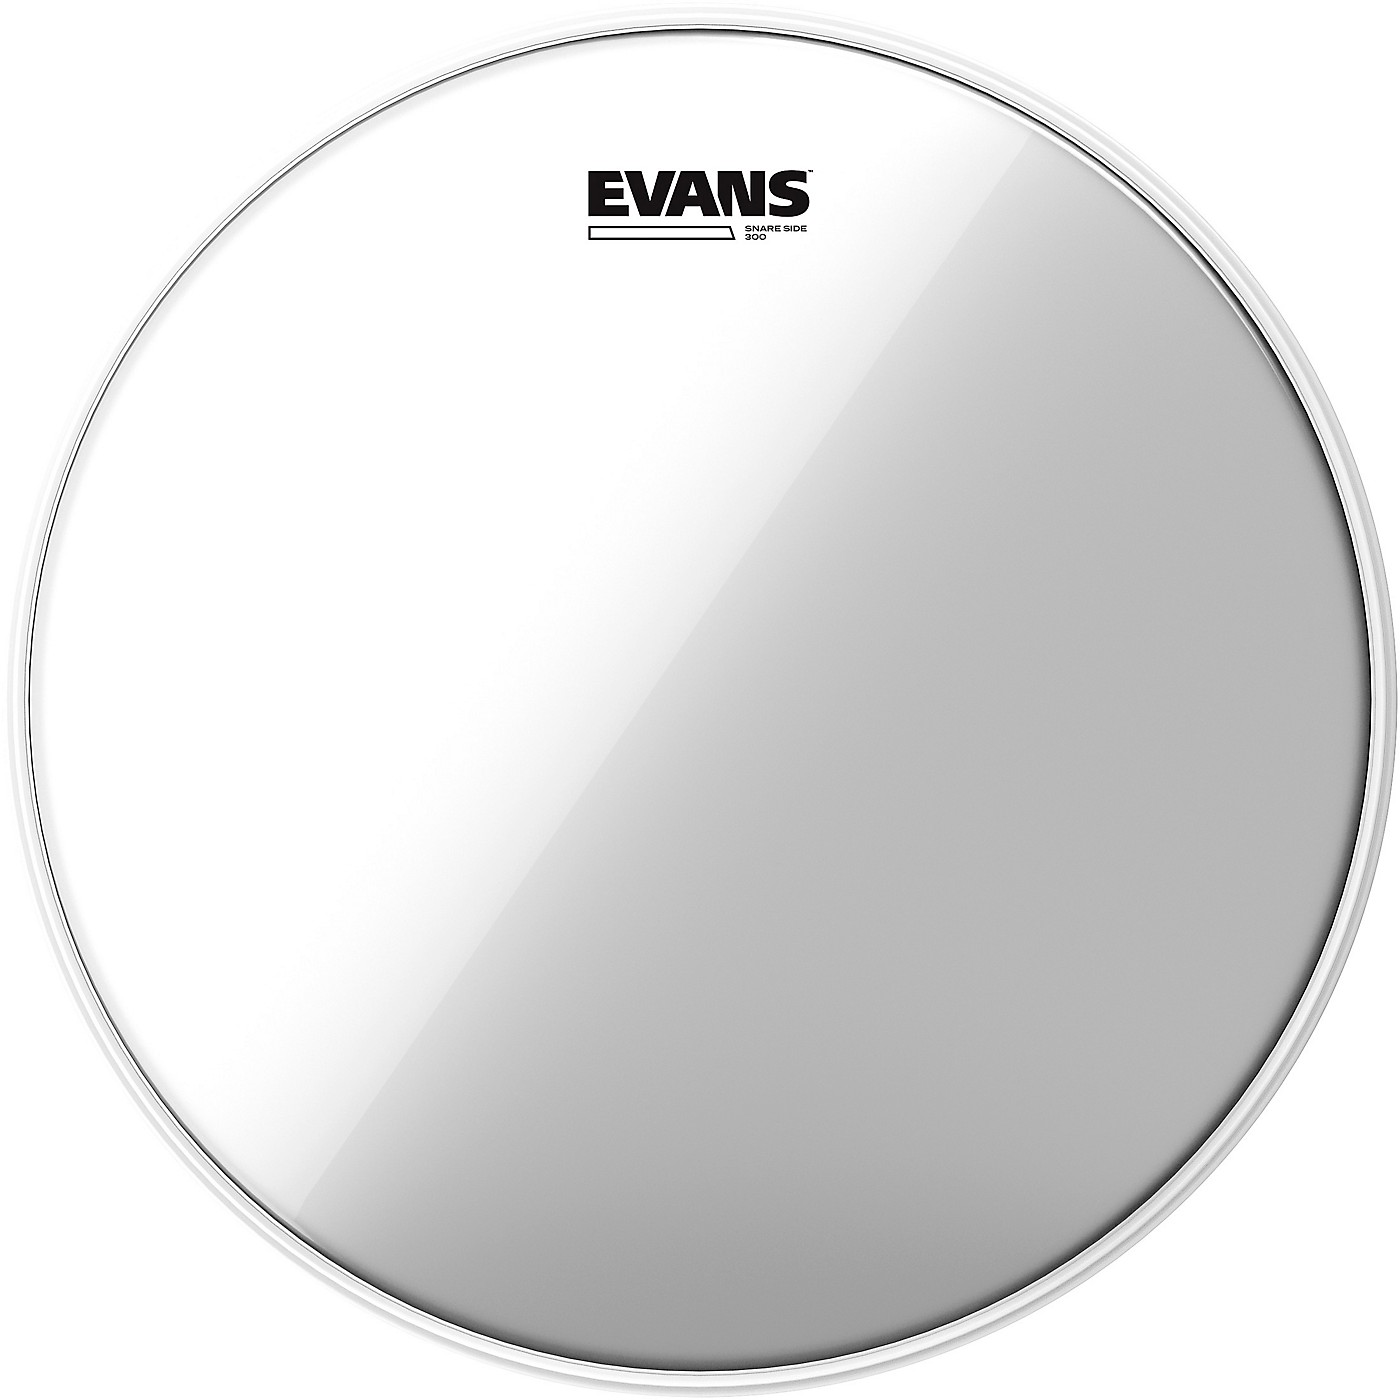 Evans 300 Snare Side Drum Head thumbnail